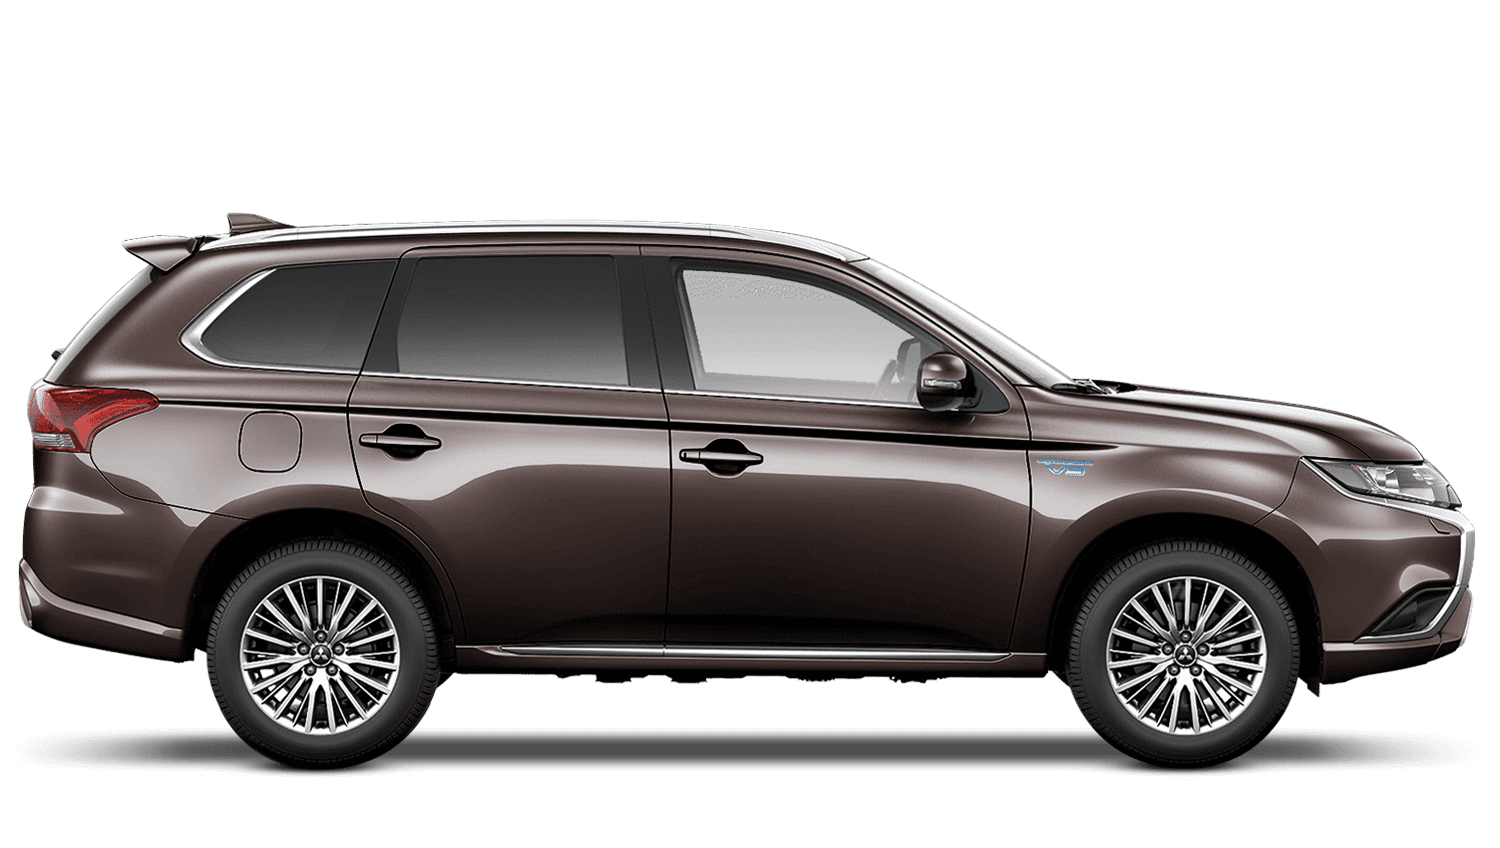 Granite Brown (Metallic) Mitsubishi Outlander Phev Commercial